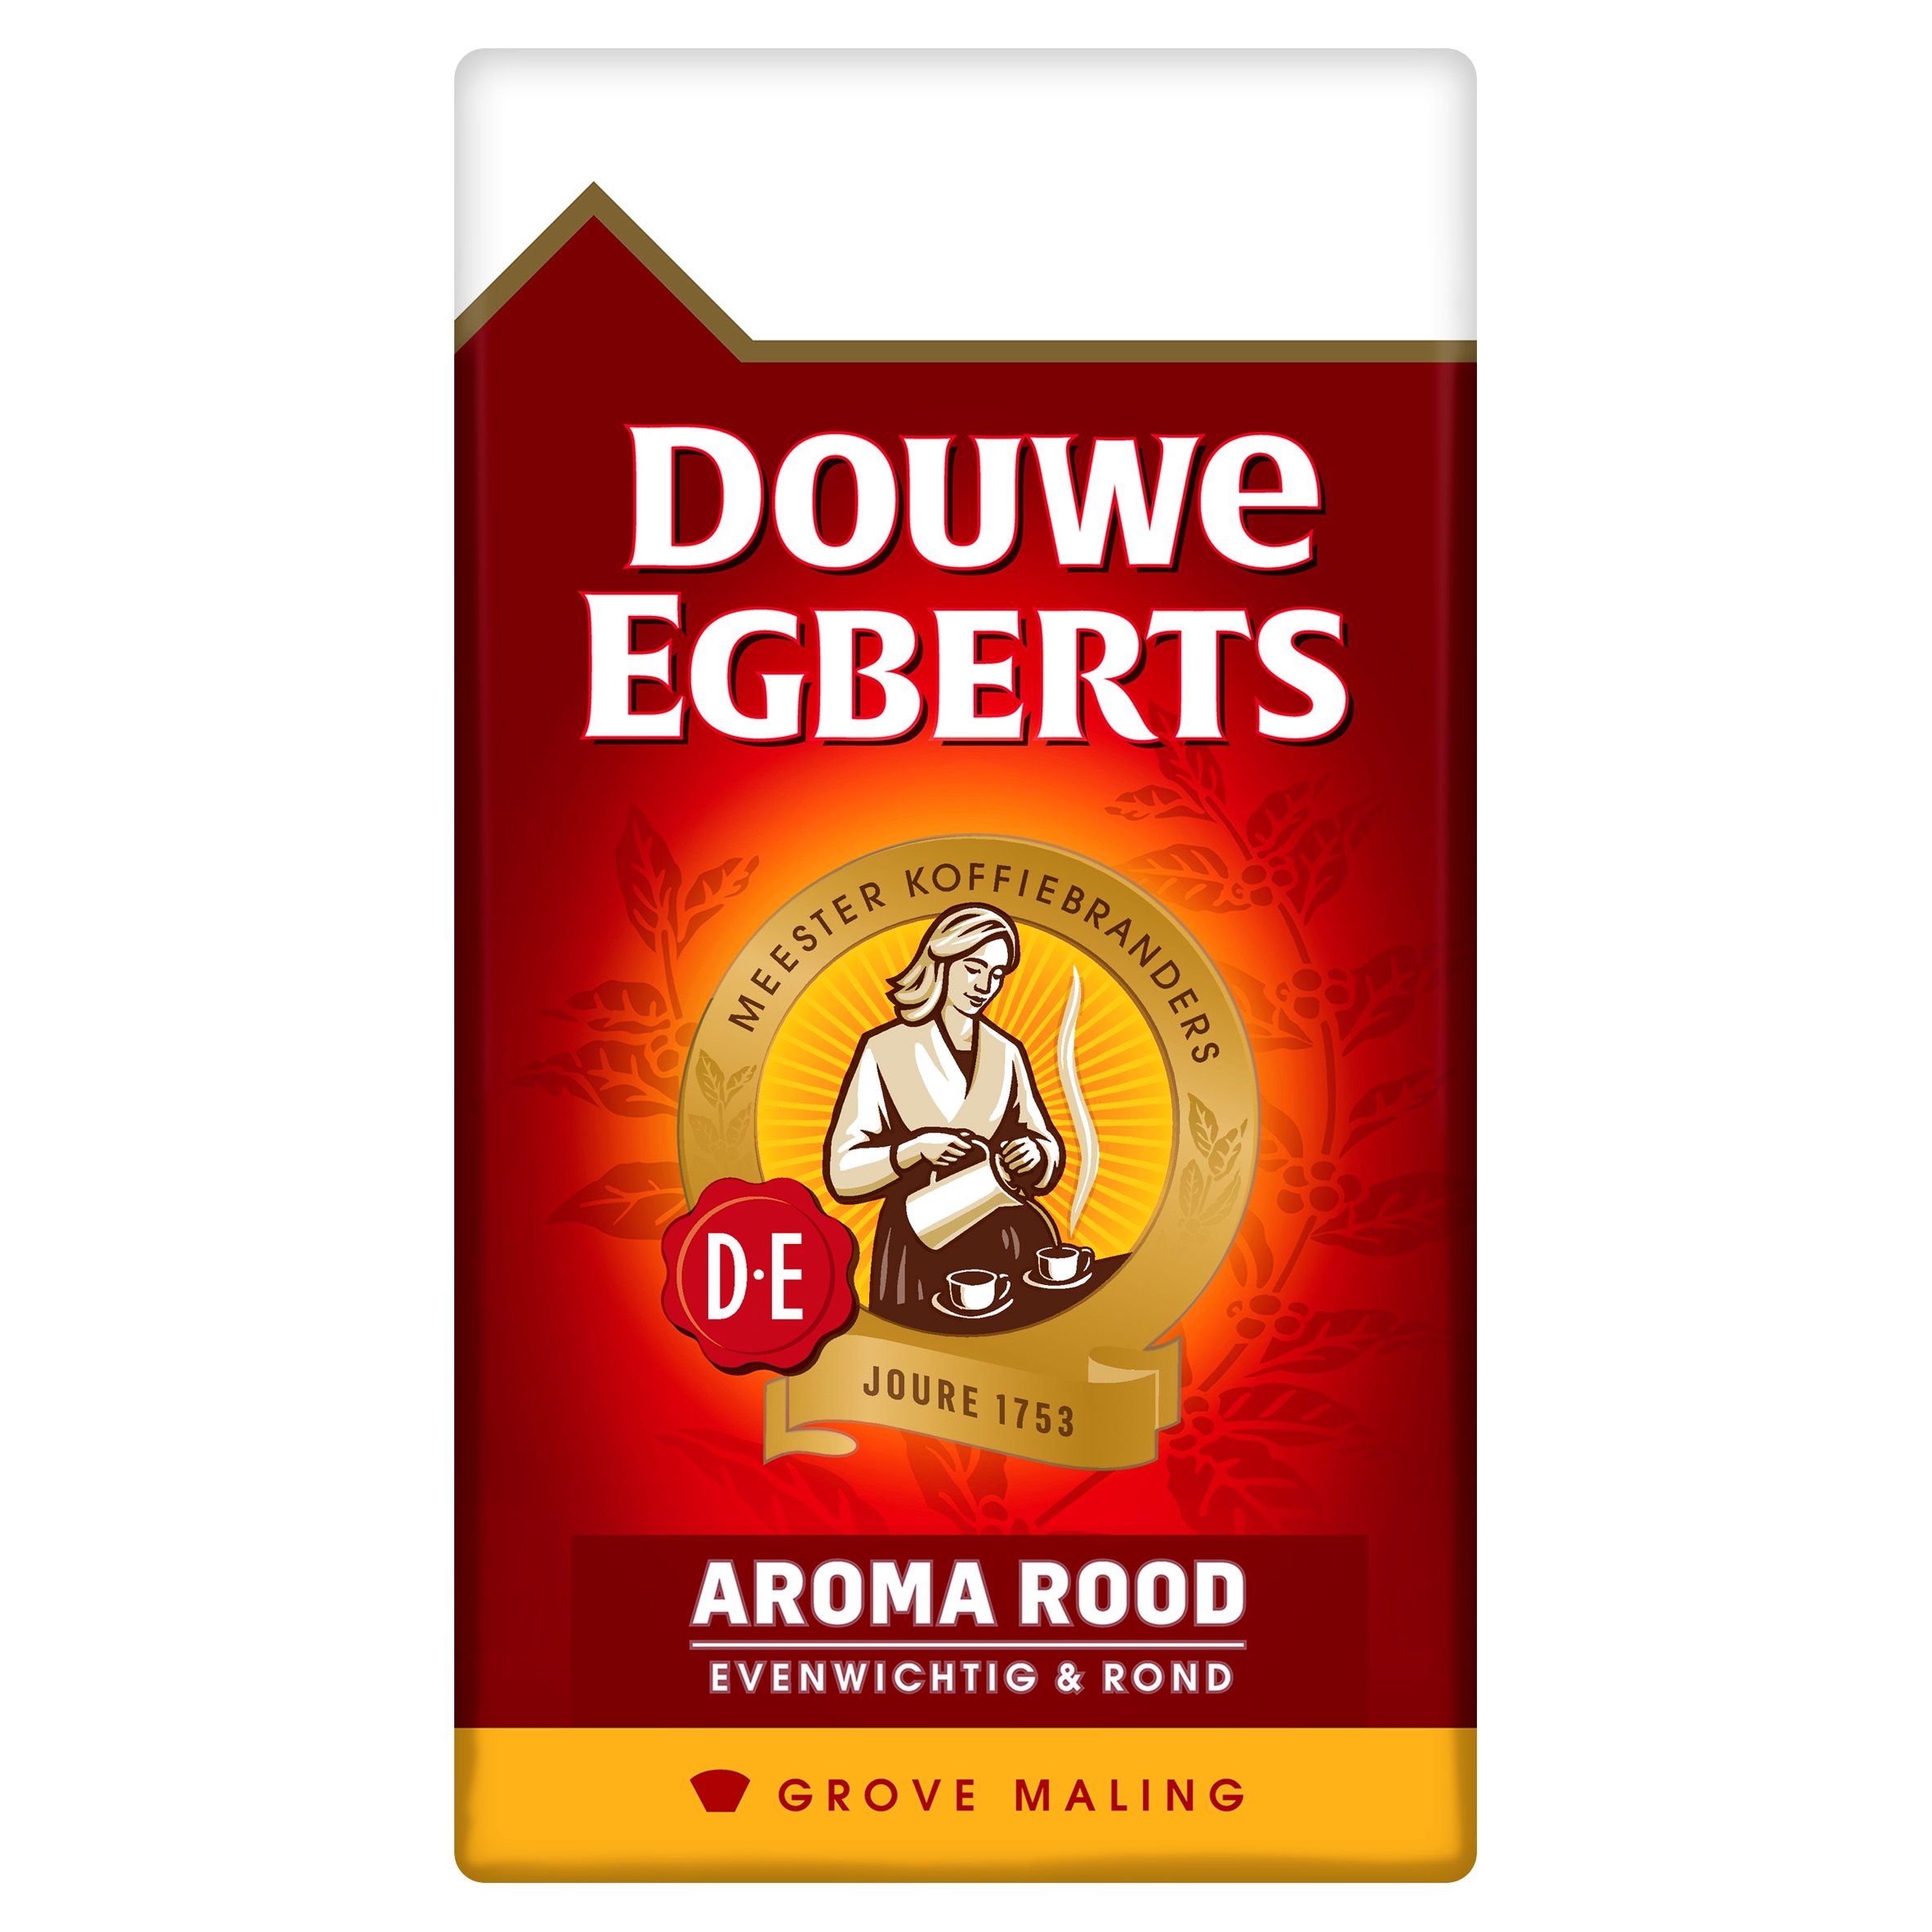 Douwe Egberts Aroma Rood Grove Maling Filterkoffie 500 g